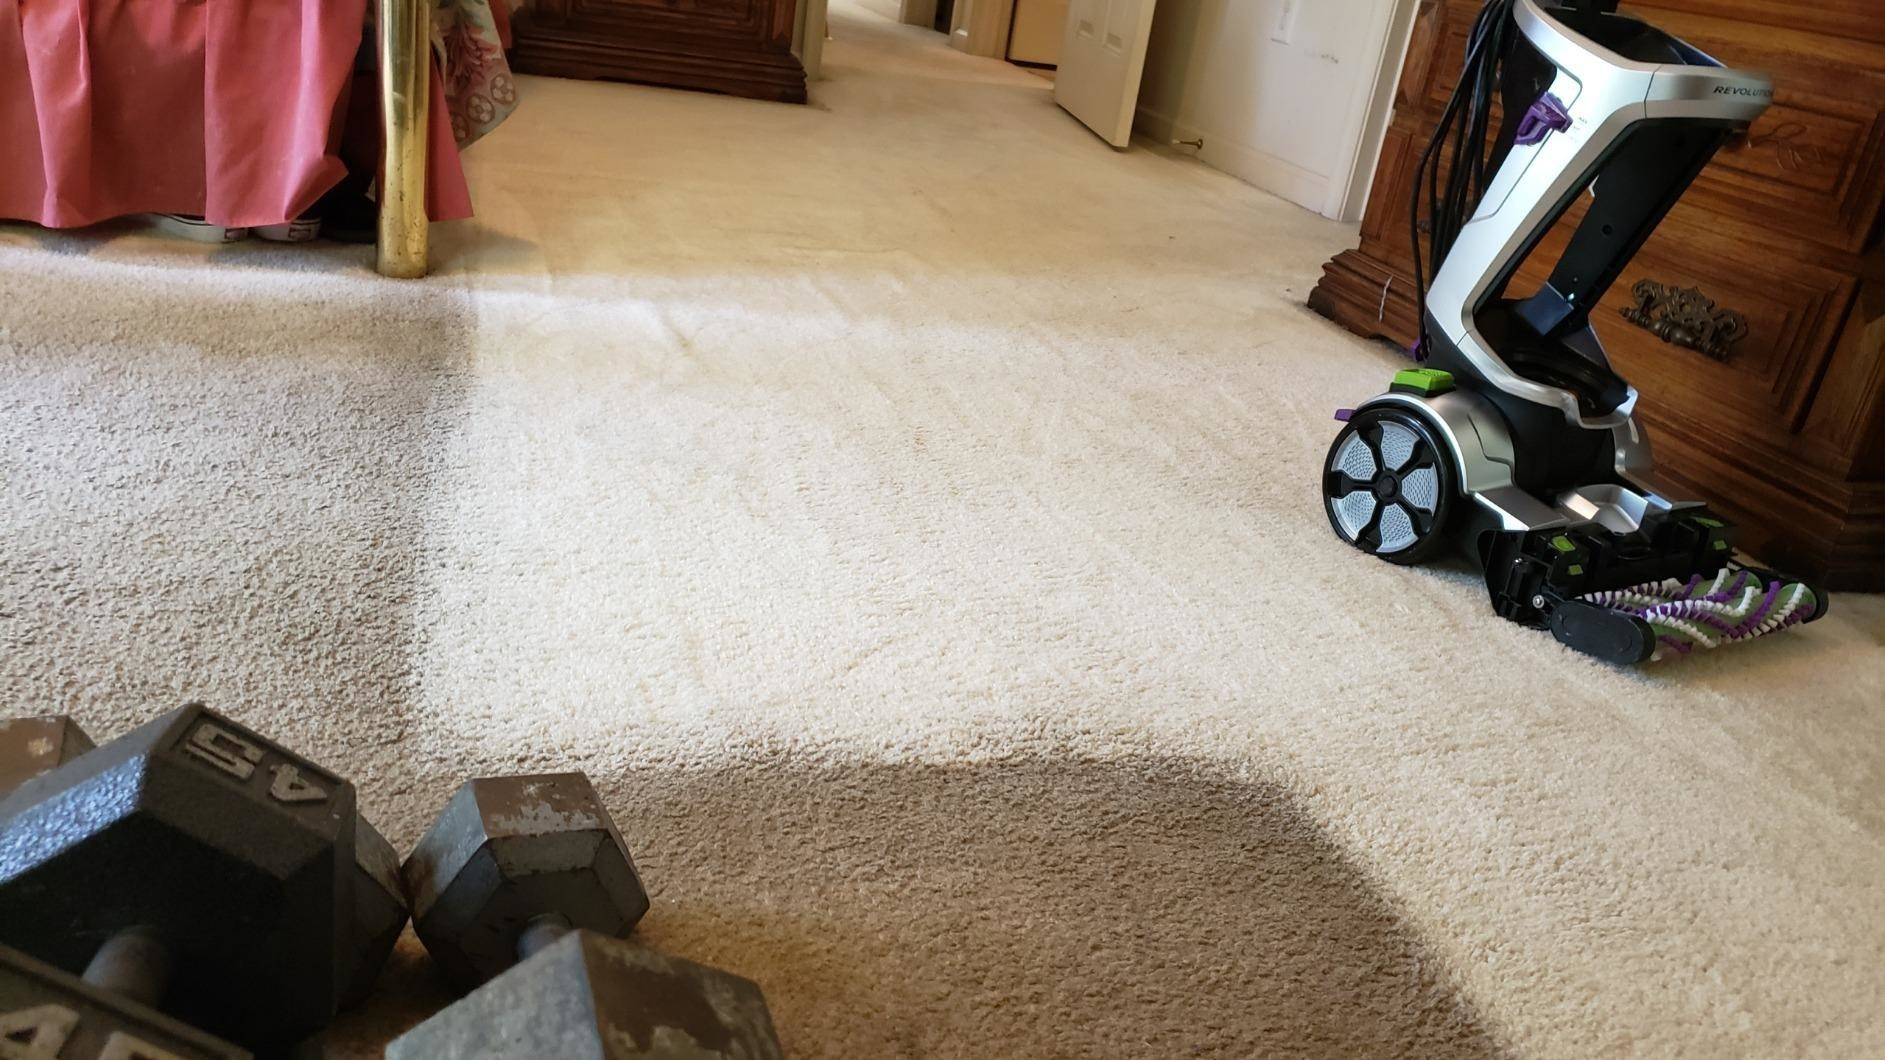 reviewer image of dirty and dark carpet next to clean and light carpet with the bissel pet pro on top